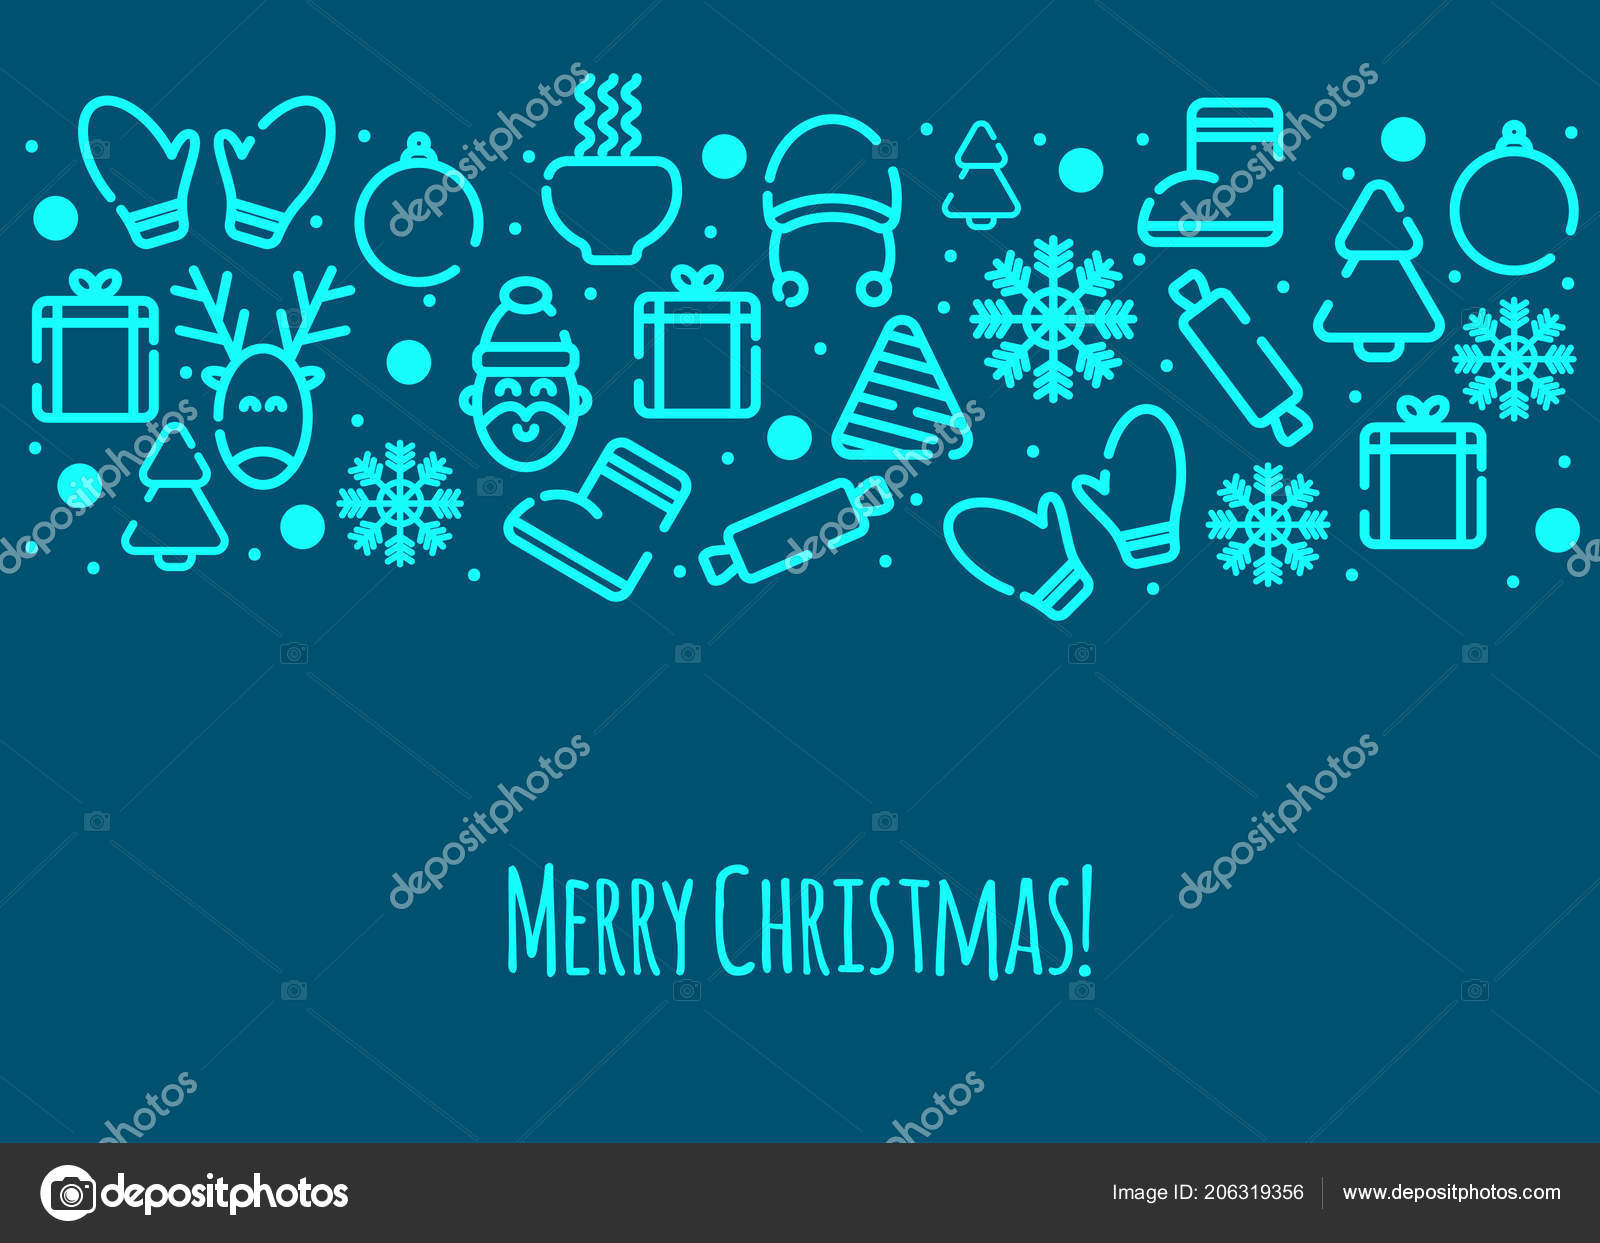 Christmas Card Merry Christmas Greetings Banner Winter Icons